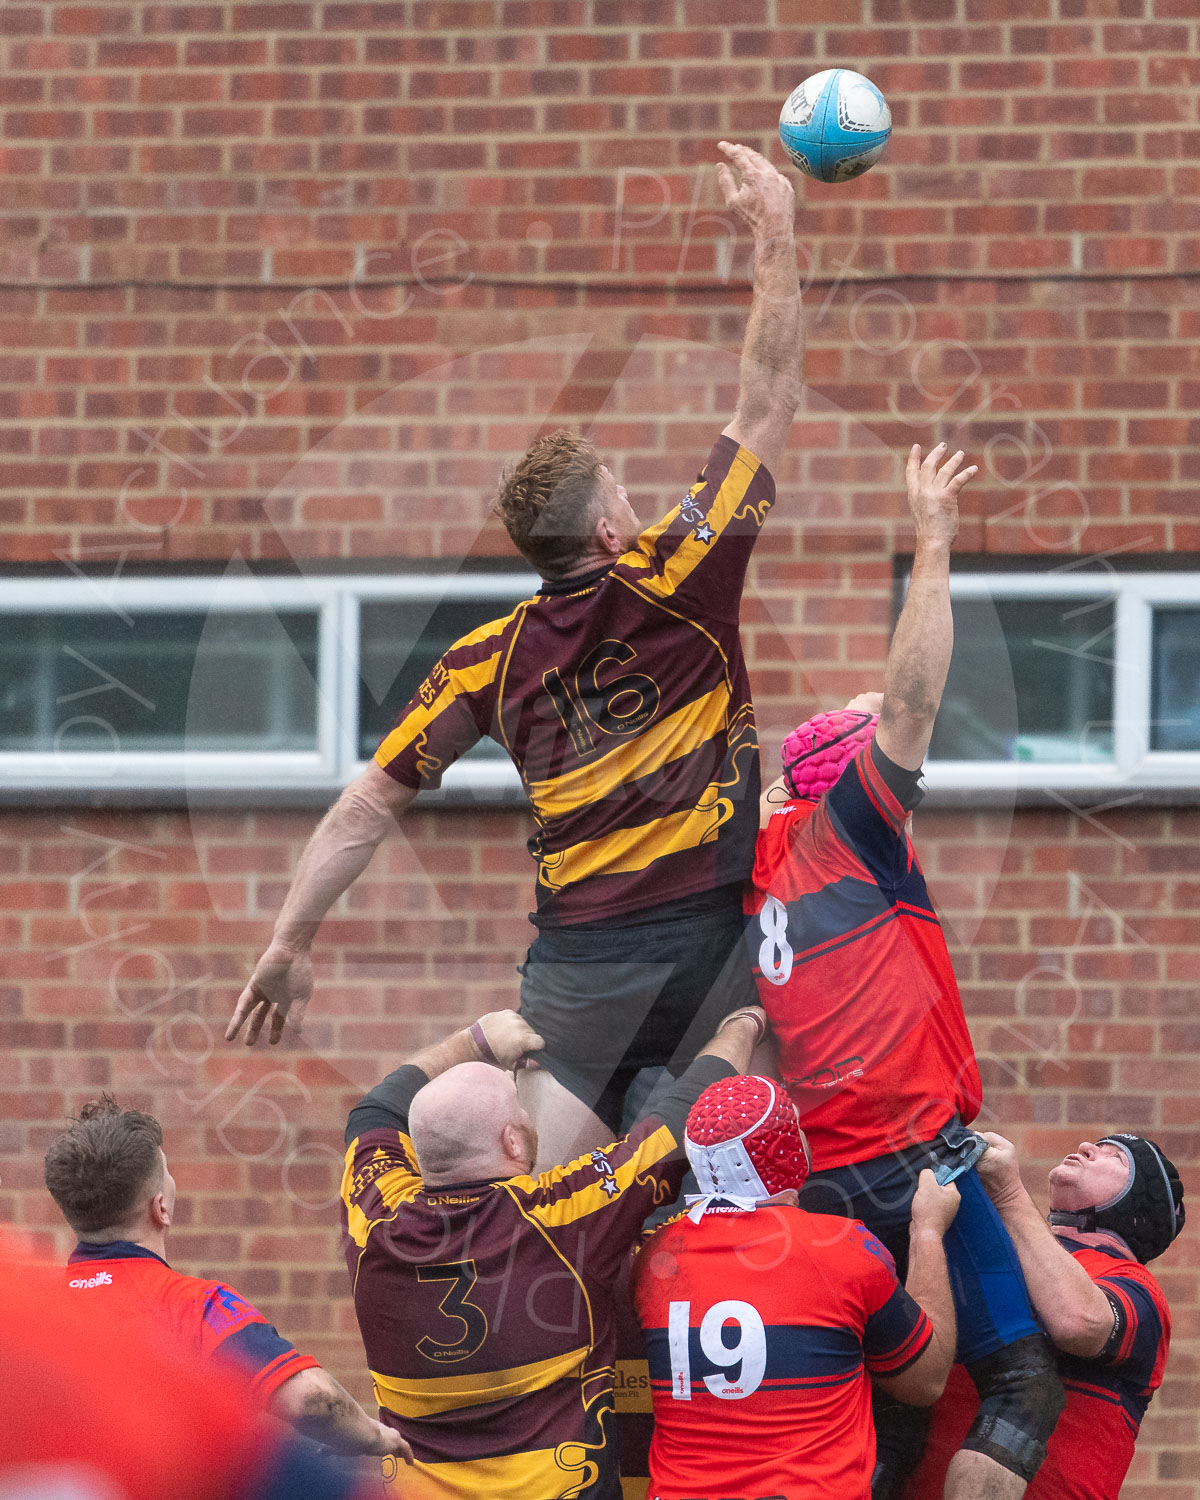 20181027 Amp Extras vs St Neots 2nd XV #2682